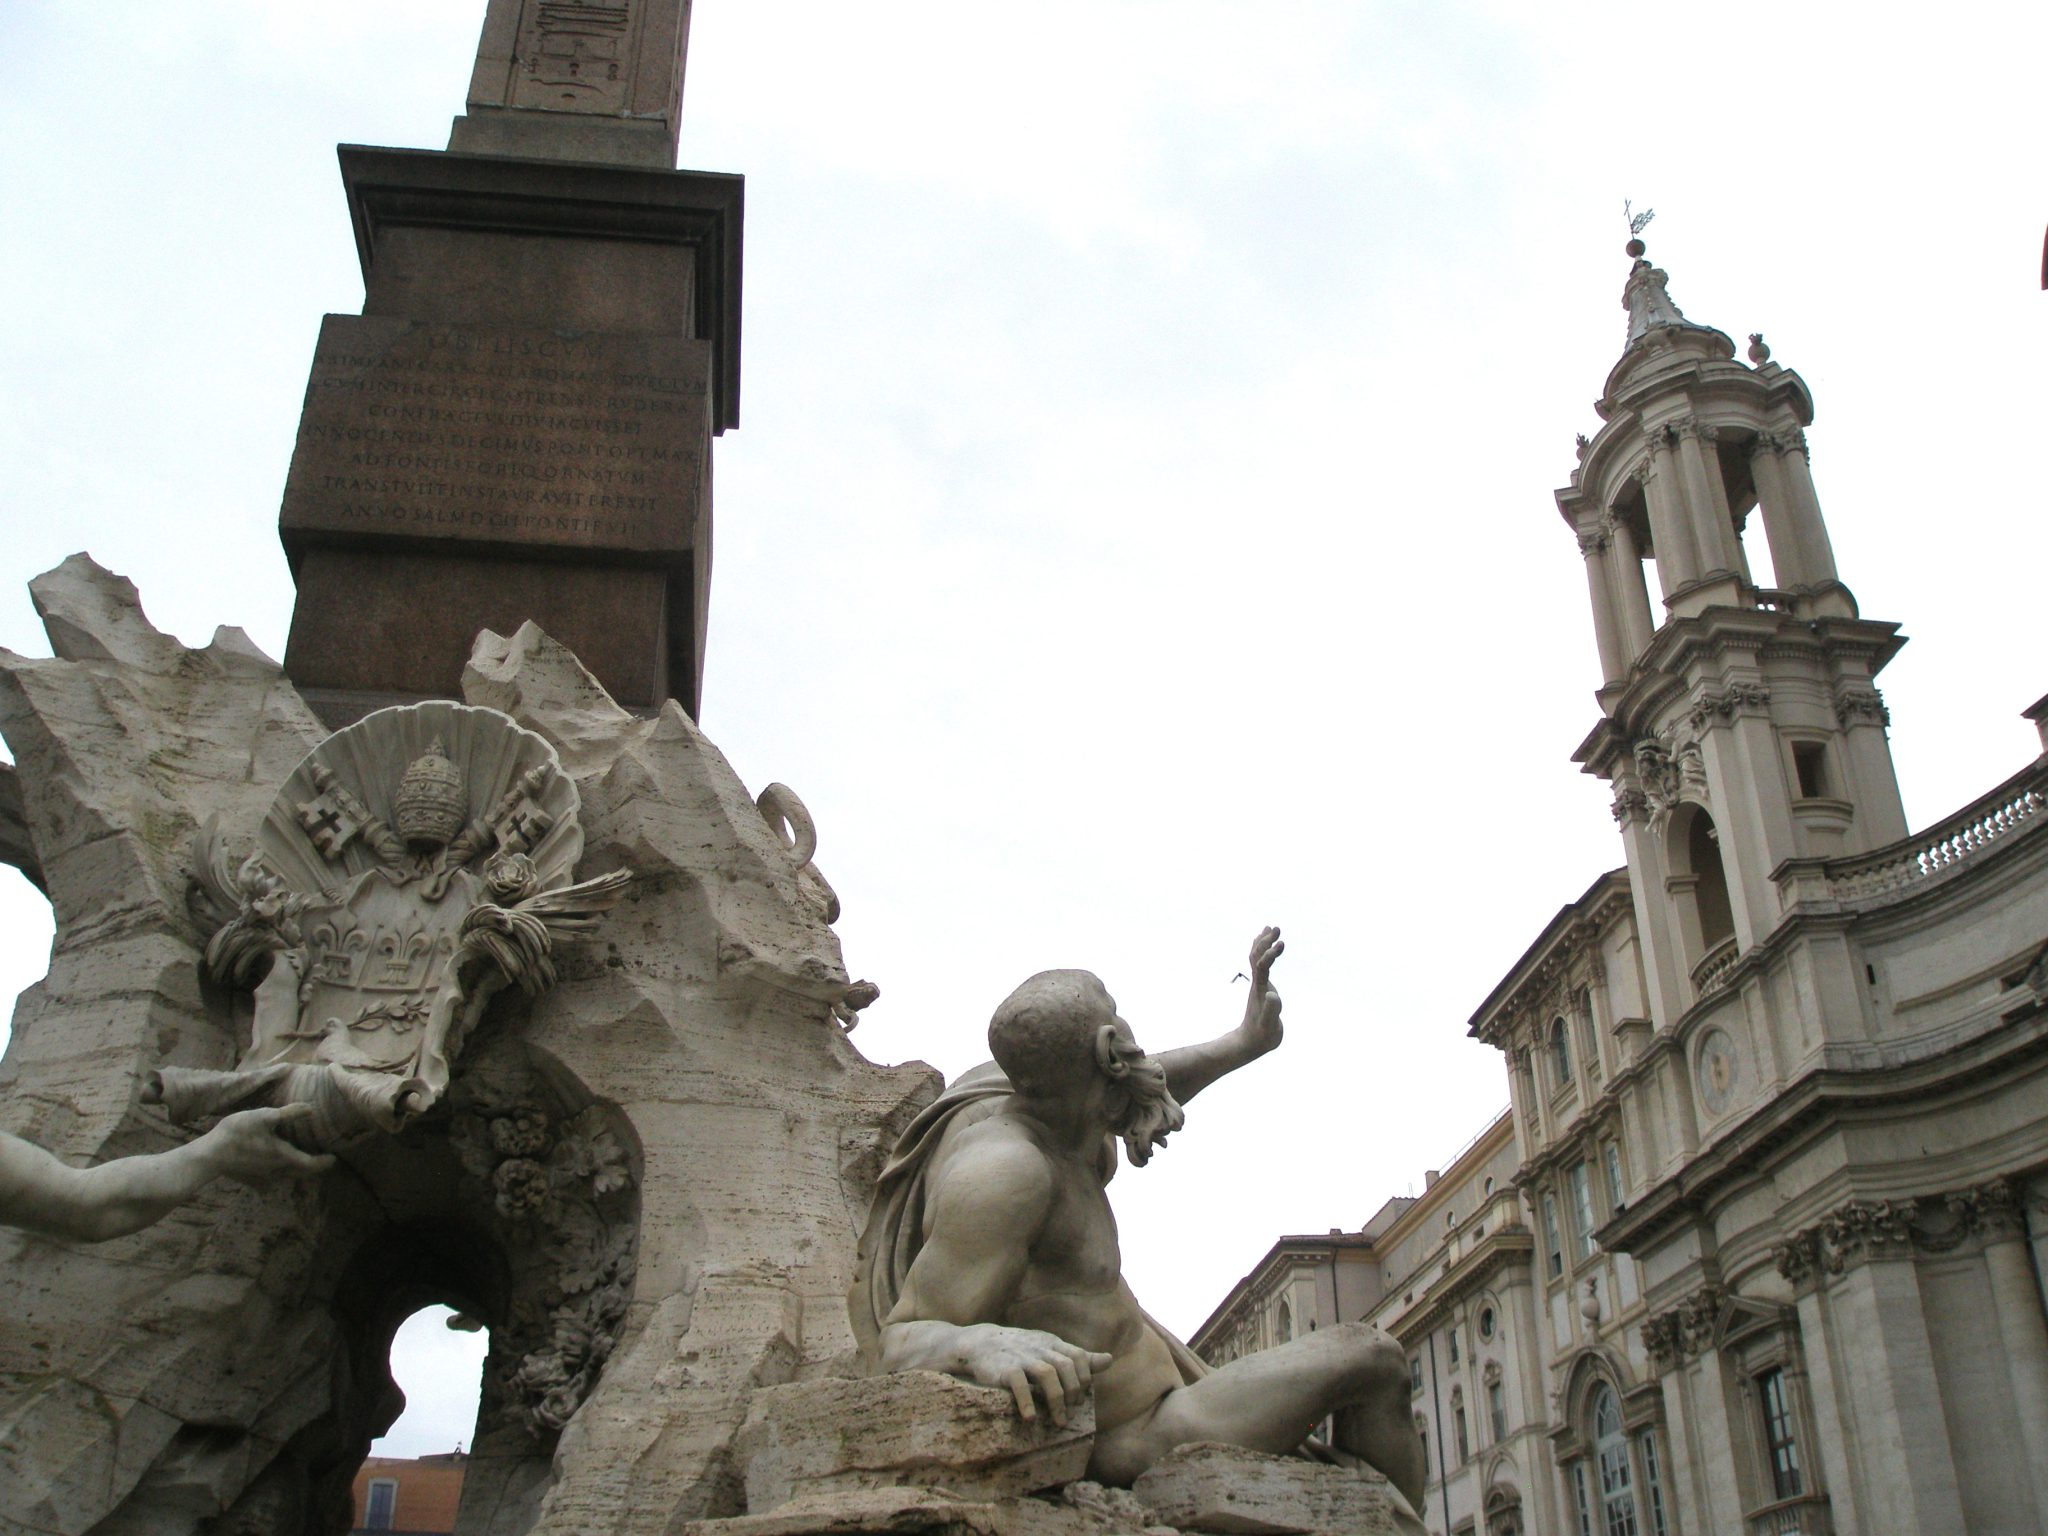 Bernini's figure of the Rio della Plata, with a tower by Borromini looming overhead.